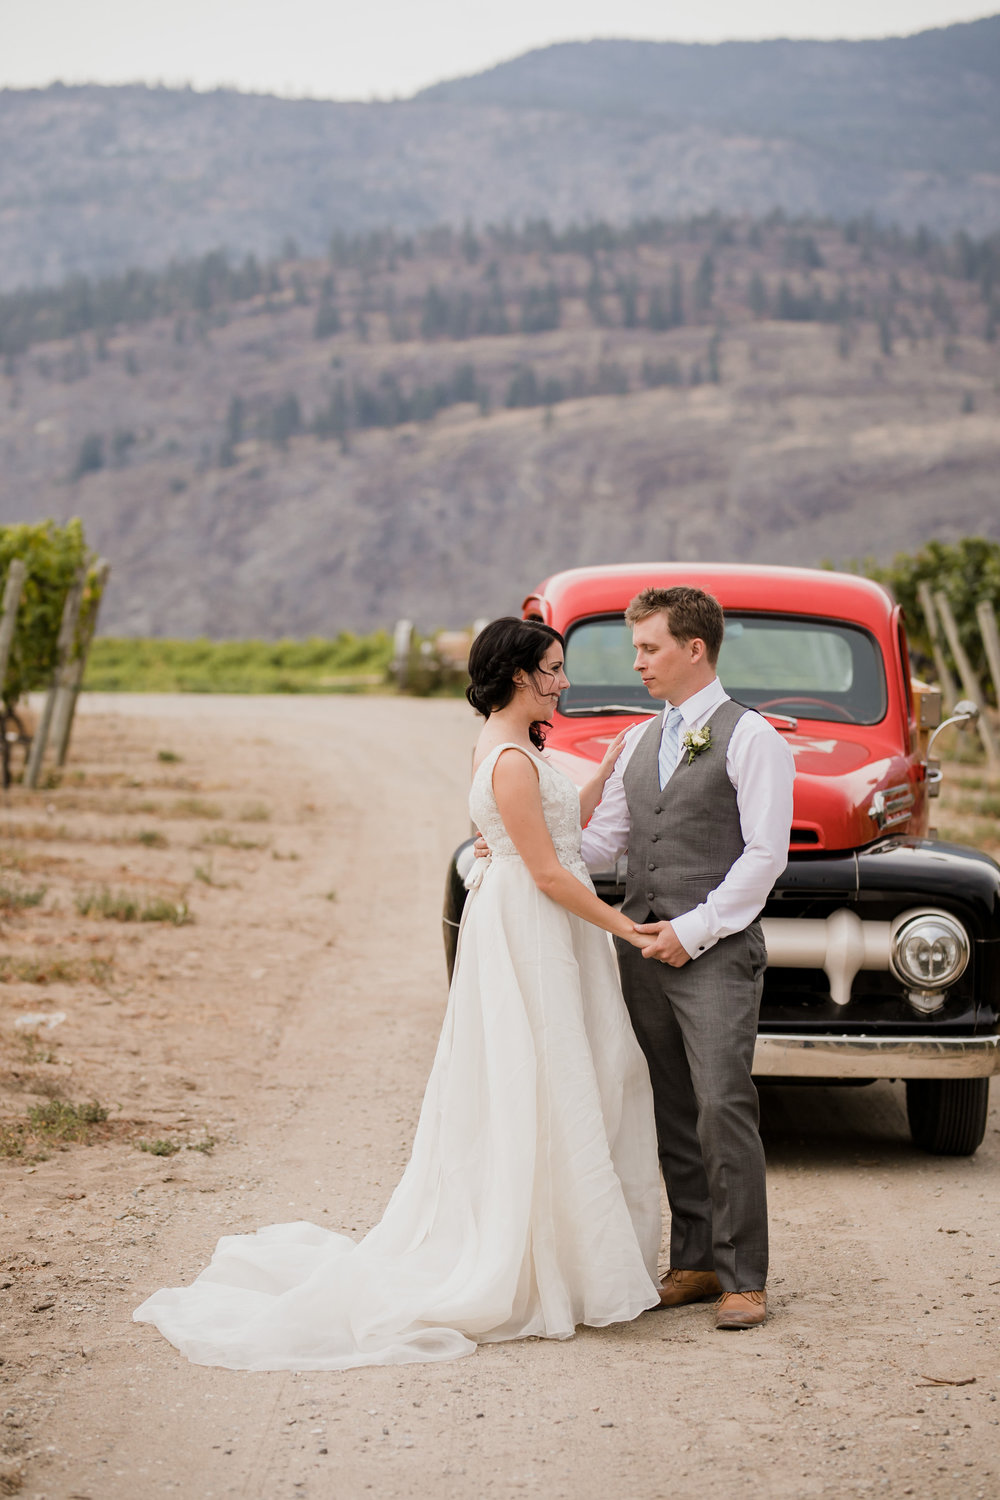 Jorden+Chris-Wedding-WonderlustPhotography-542.jpg